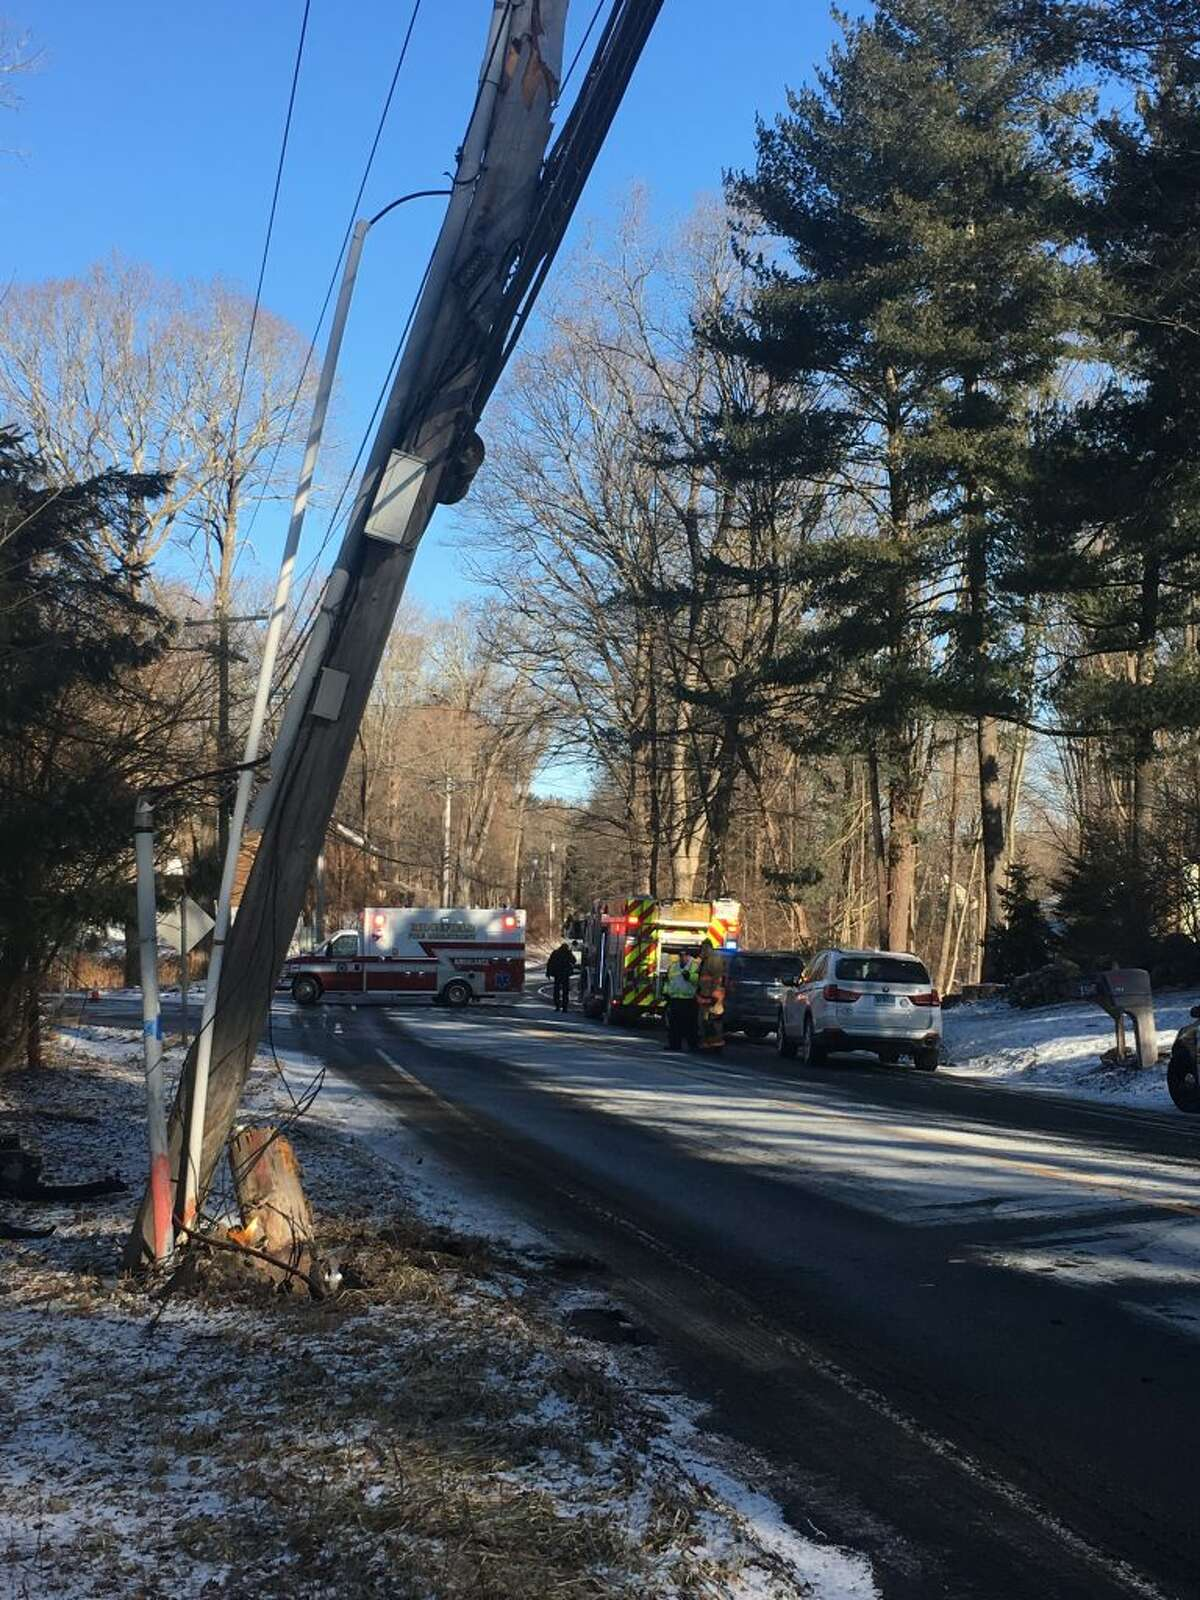 Police closed off part of Route 116 Thursday, Jan. 31 after a car crashed into a utility pole. - Steve Coulter photo